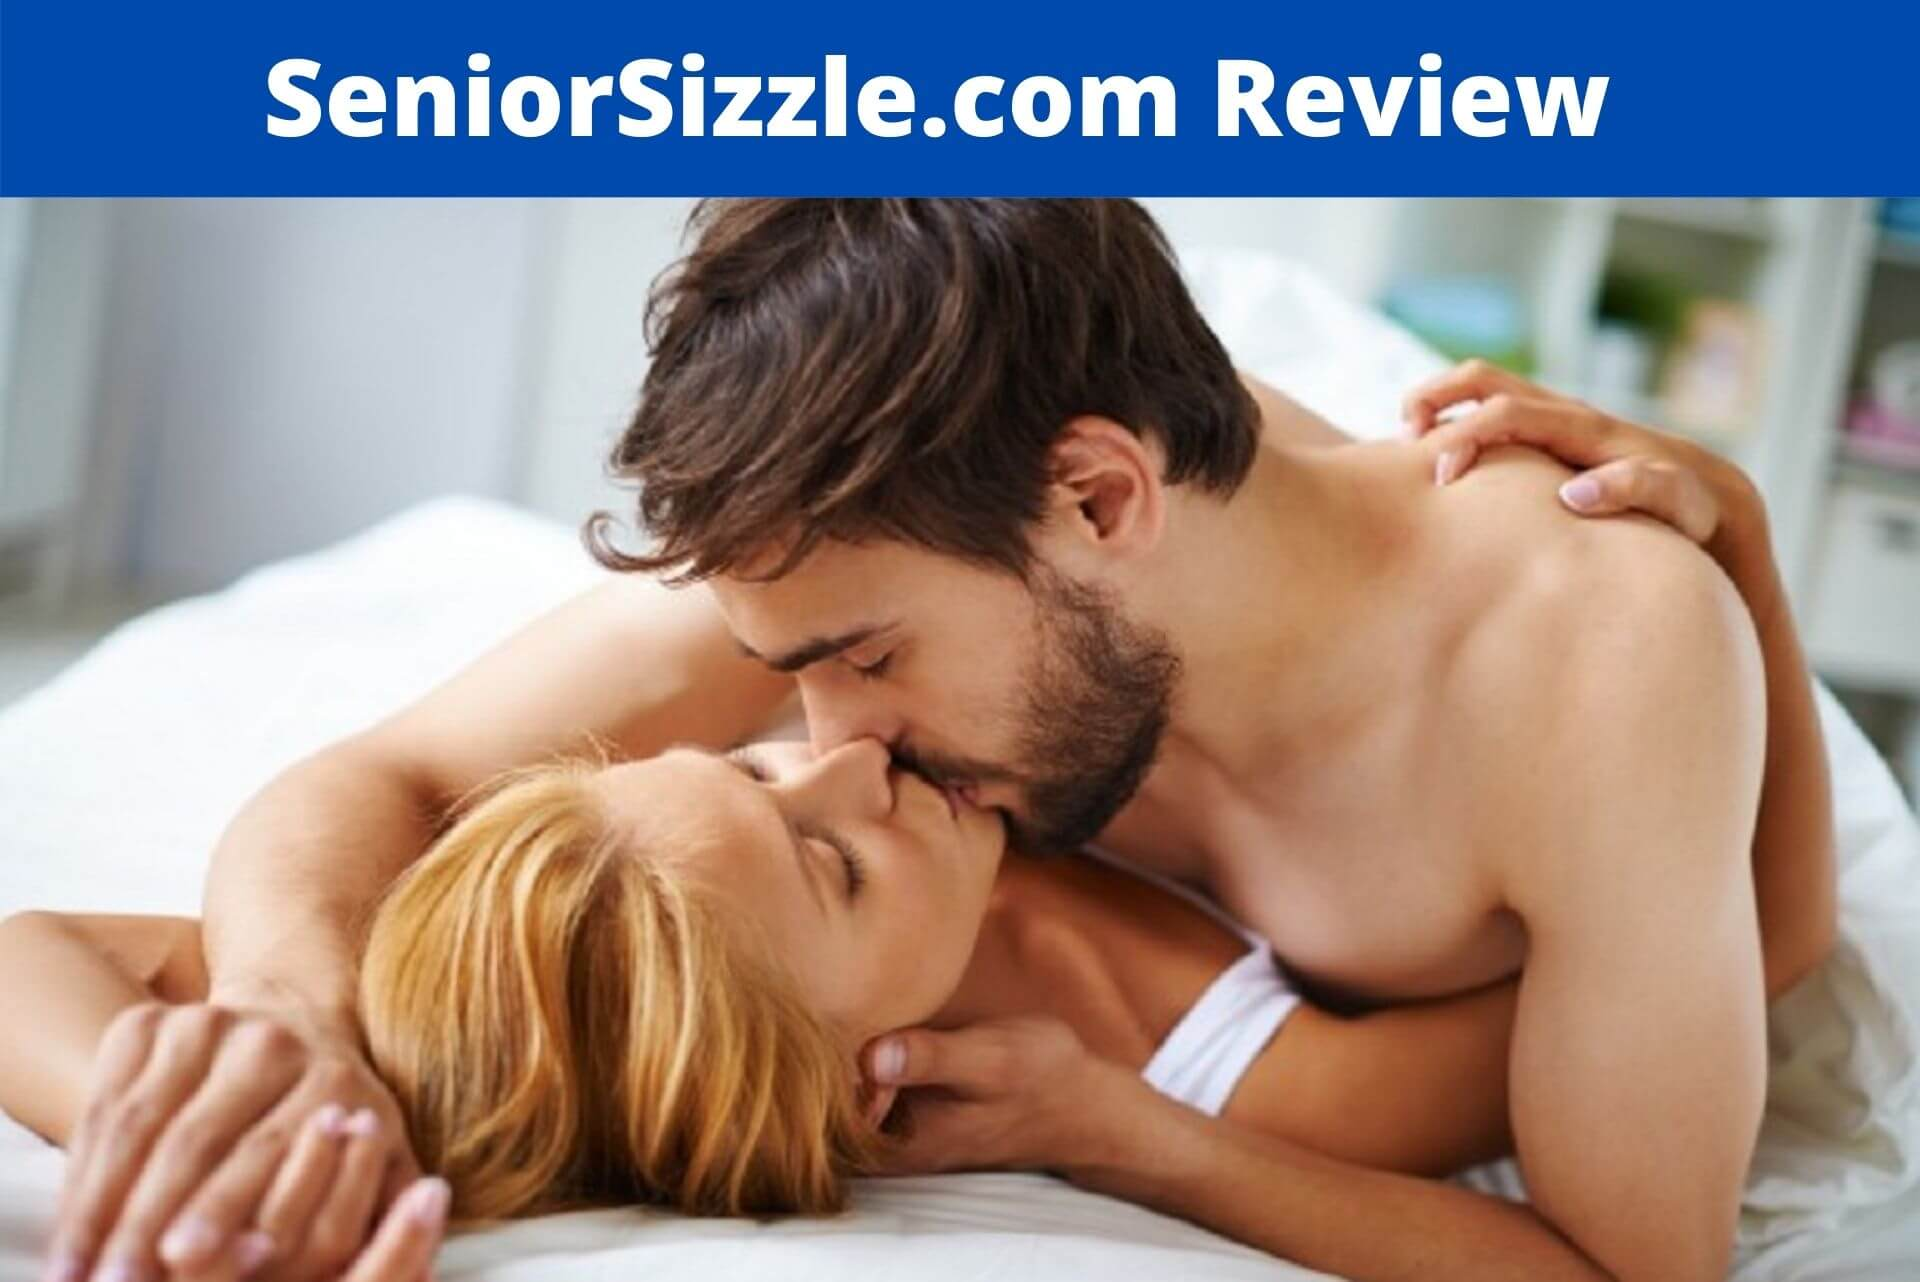 SeniorSizzle.com Review